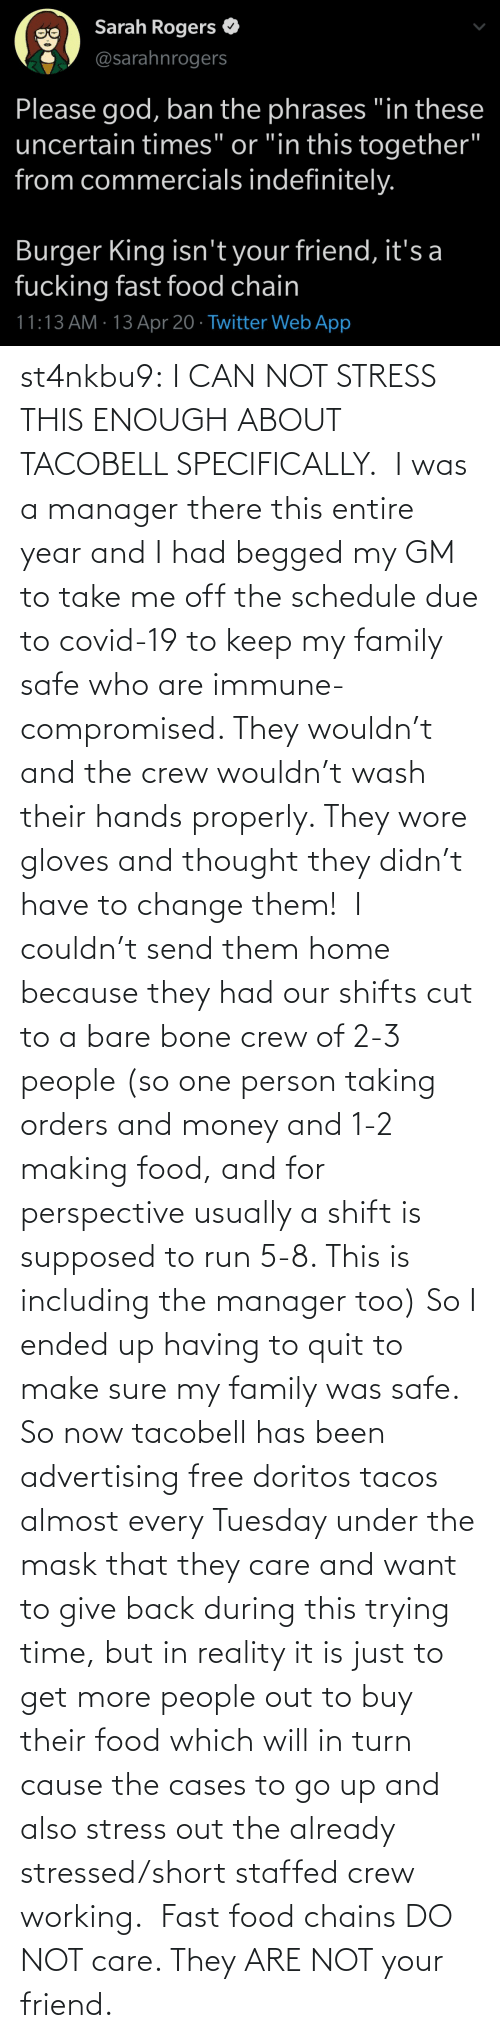 manager: st4nkbu9:  I CAN NOT STRESS THIS ENOUGH ABOUT TACOBELL SPECIFICALLY.  I was a manager there this entire year and I had begged my GM to take me off the schedule due to covid-19 to keep my family safe who are immune-compromised. They wouldn't and the crew wouldn't wash their hands properly. They wore gloves and thought they didn't have to change them!  I couldn't send them home because they had our shifts cut to a bare bone crew of 2-3 people (so one person taking orders and money and 1-2 making food, and for perspective usually a shift is supposed to run 5-8. This is including the manager too) So I ended up having to quit to make sure my family was safe. So now tacobell has been advertising free doritos tacos almost every Tuesday under the mask that they care and want to give back during this trying time, but in reality it is just to get more people out to buy their food which will in turn cause the cases to go up and also stress out the already stressed/short staffed crew working.  Fast food chains DO NOT care. They ARE NOT your friend.